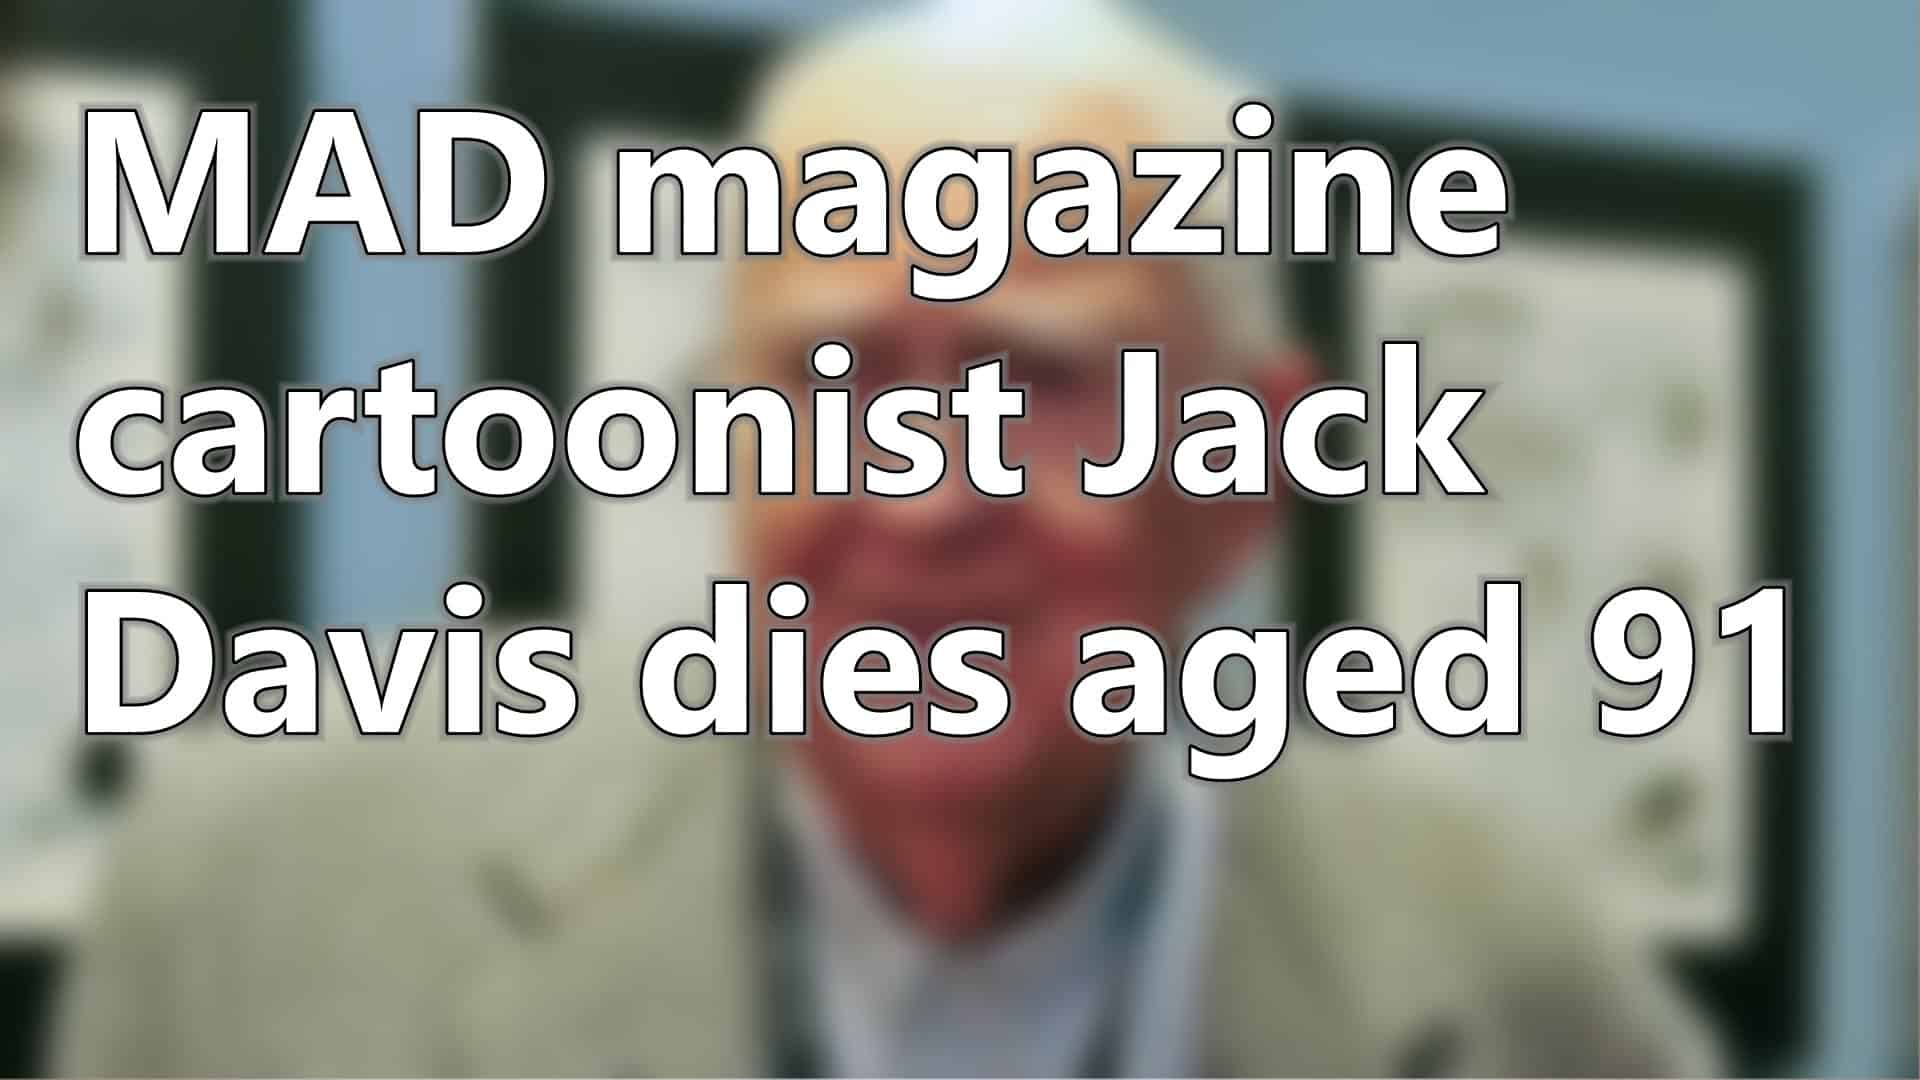 MAD magazine cartoonist Jack Davis dies aged 91 | Short News 3